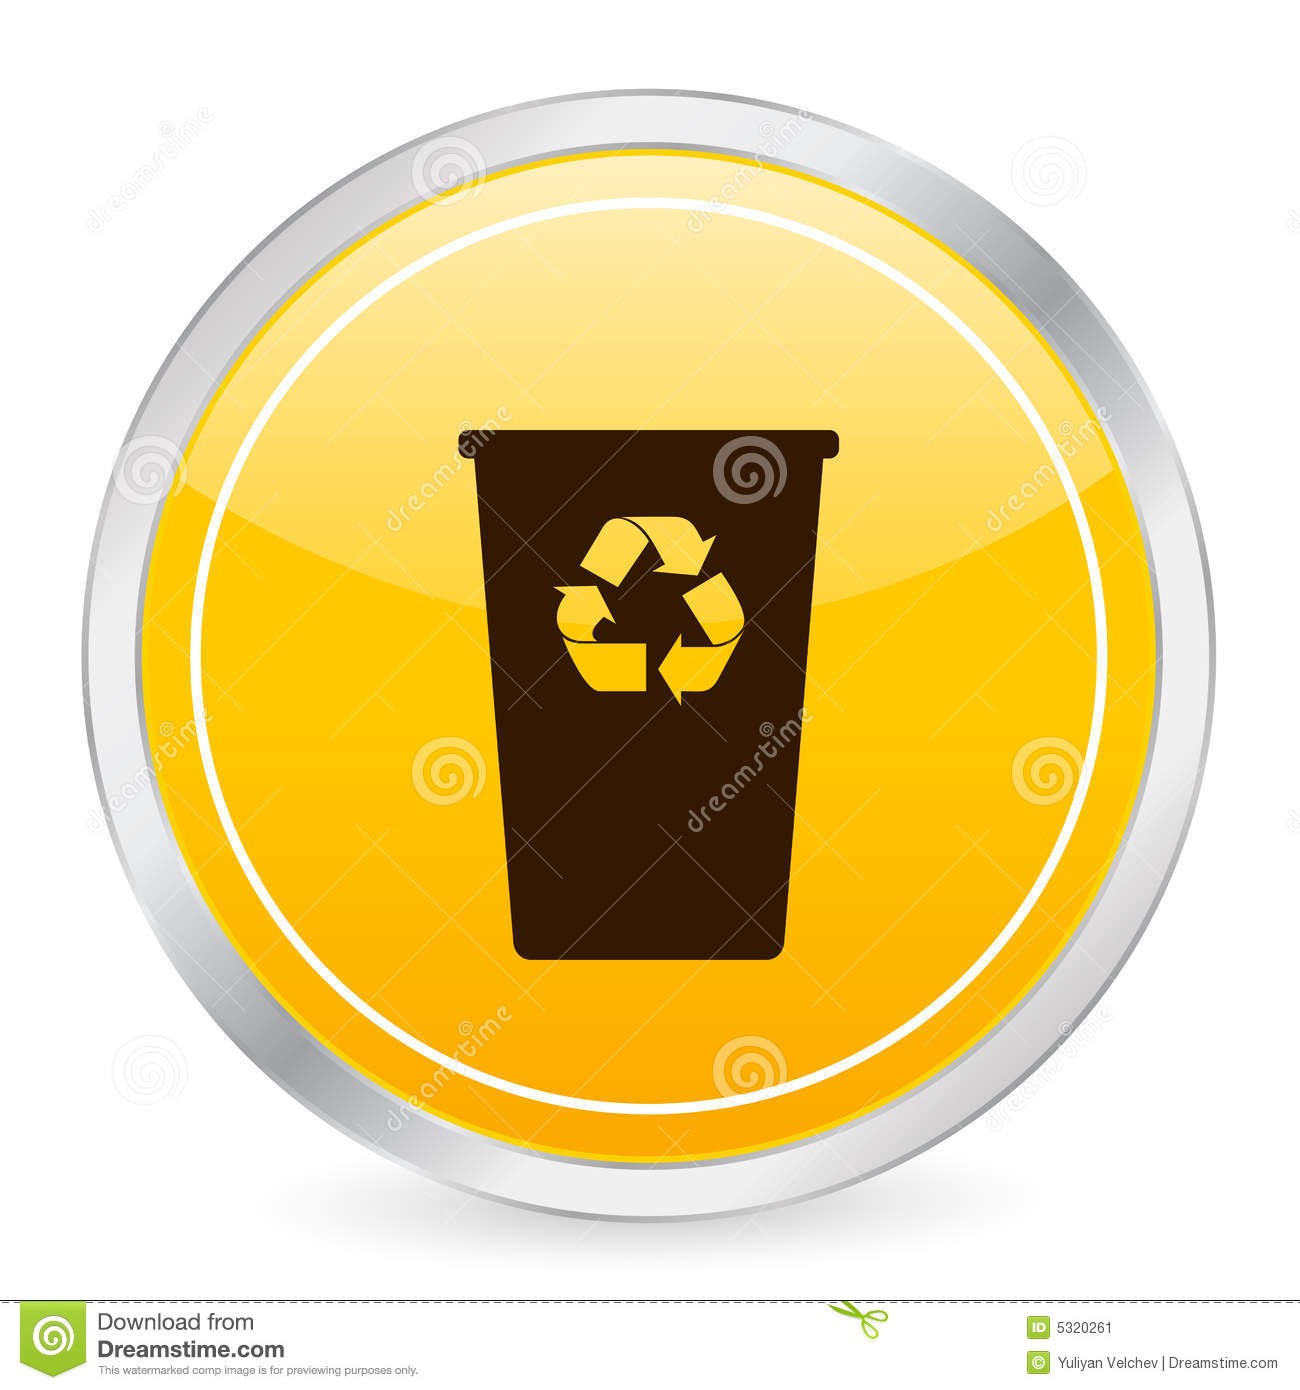 Recycle bin icon recycle bin yellow circle icon